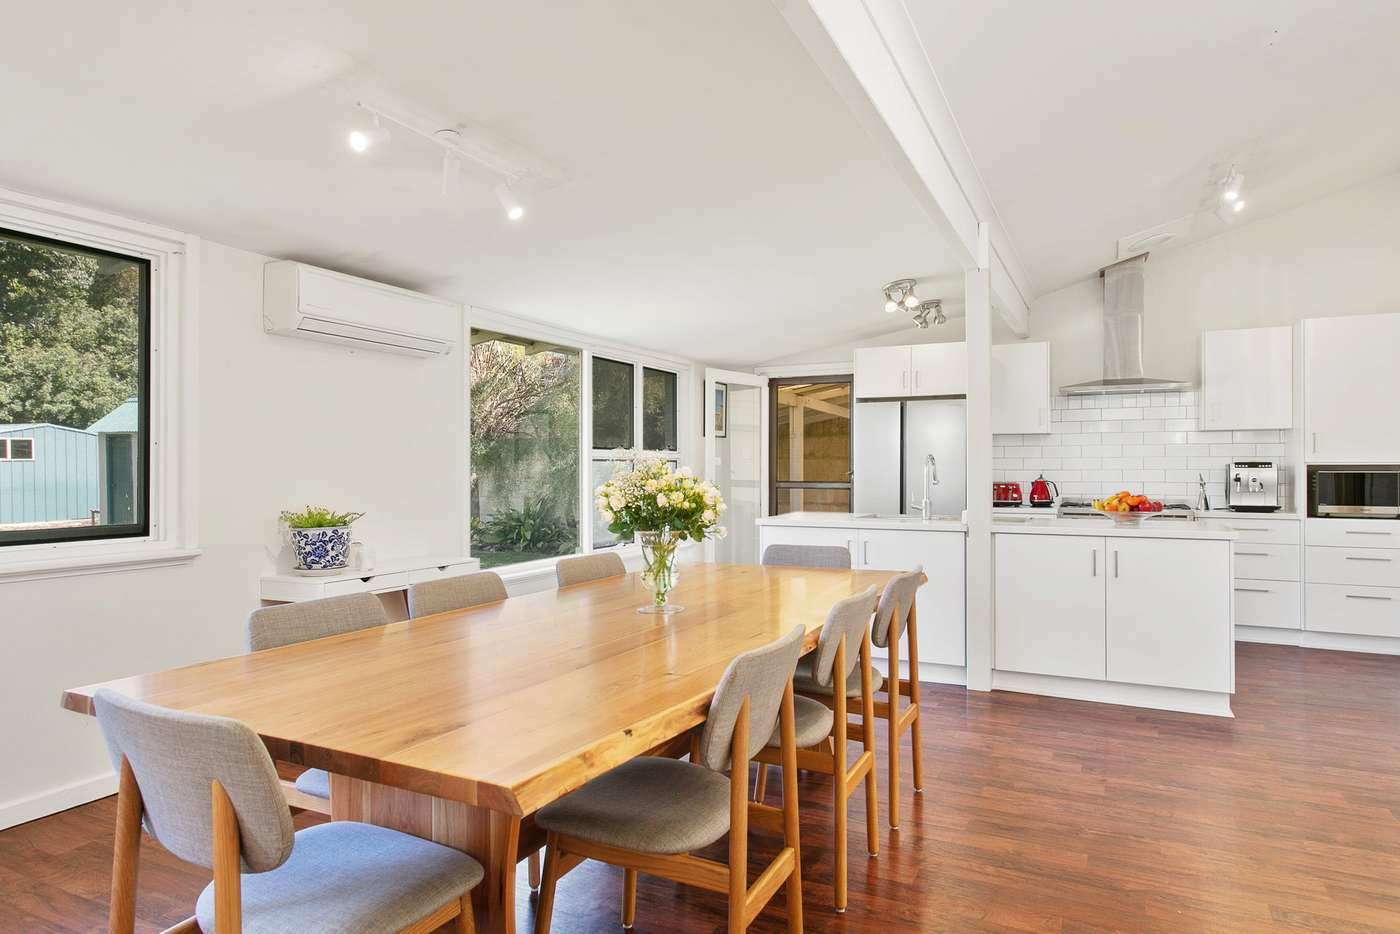 Main view of Homely house listing, 20 Cooper Street, Nedlands WA 6009